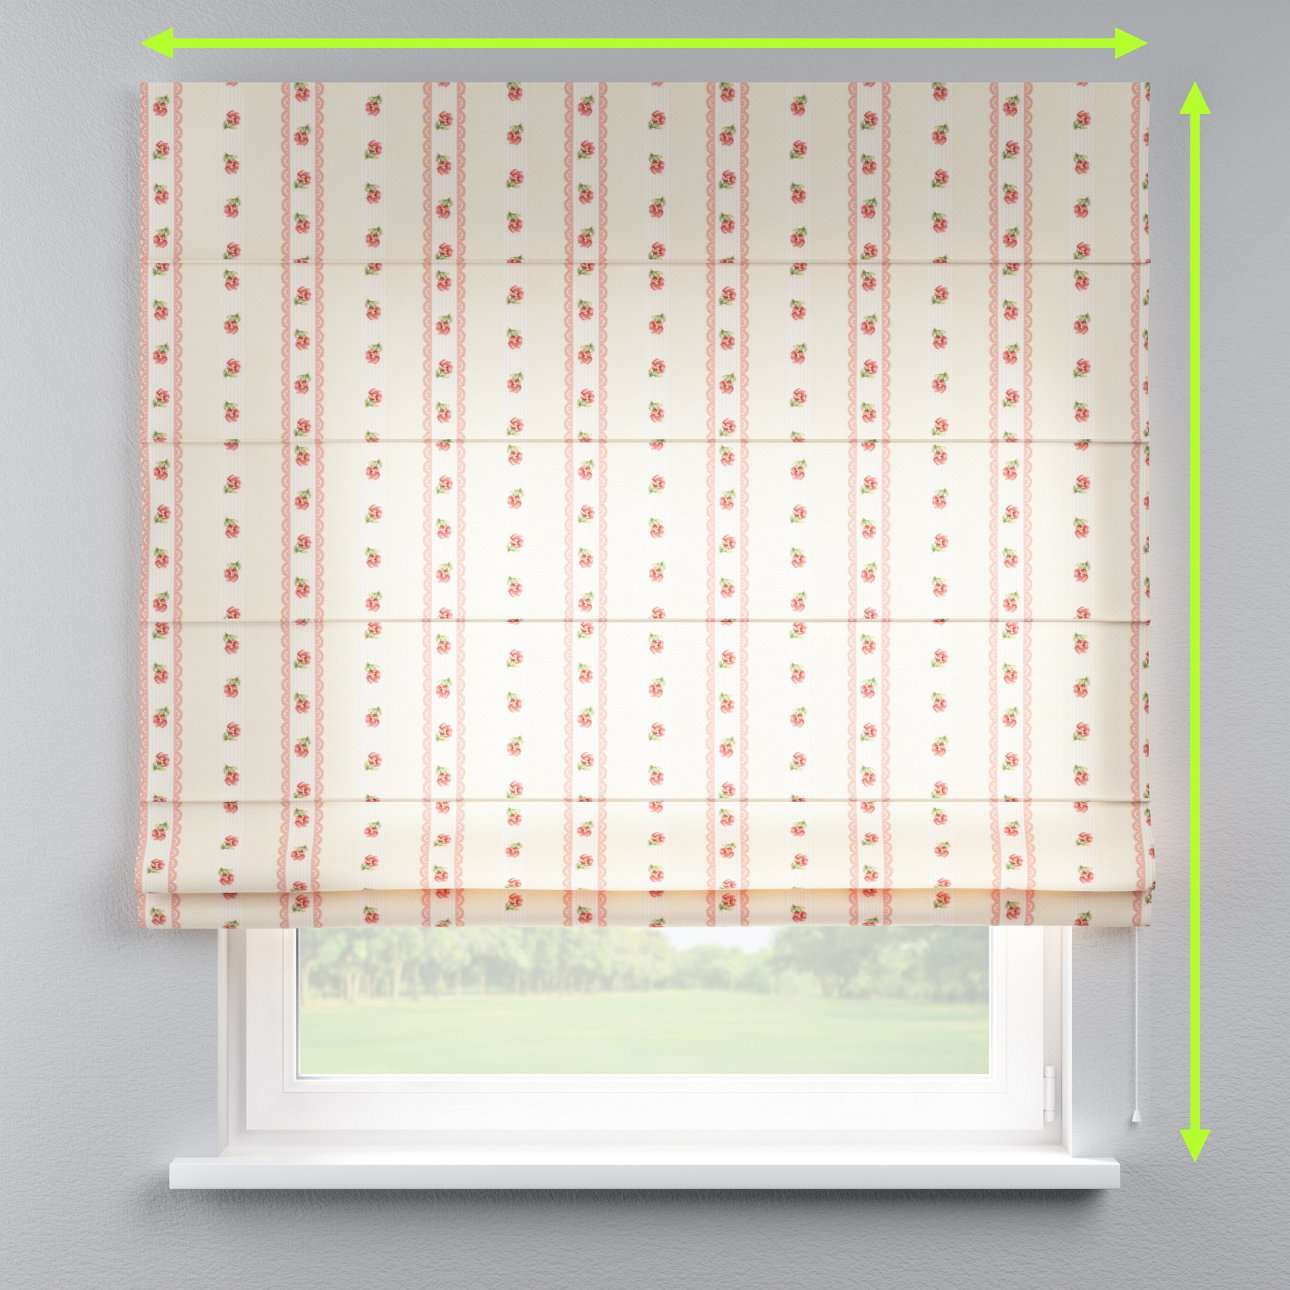 Lined roman blind in collection Ashley, fabric: 137-48